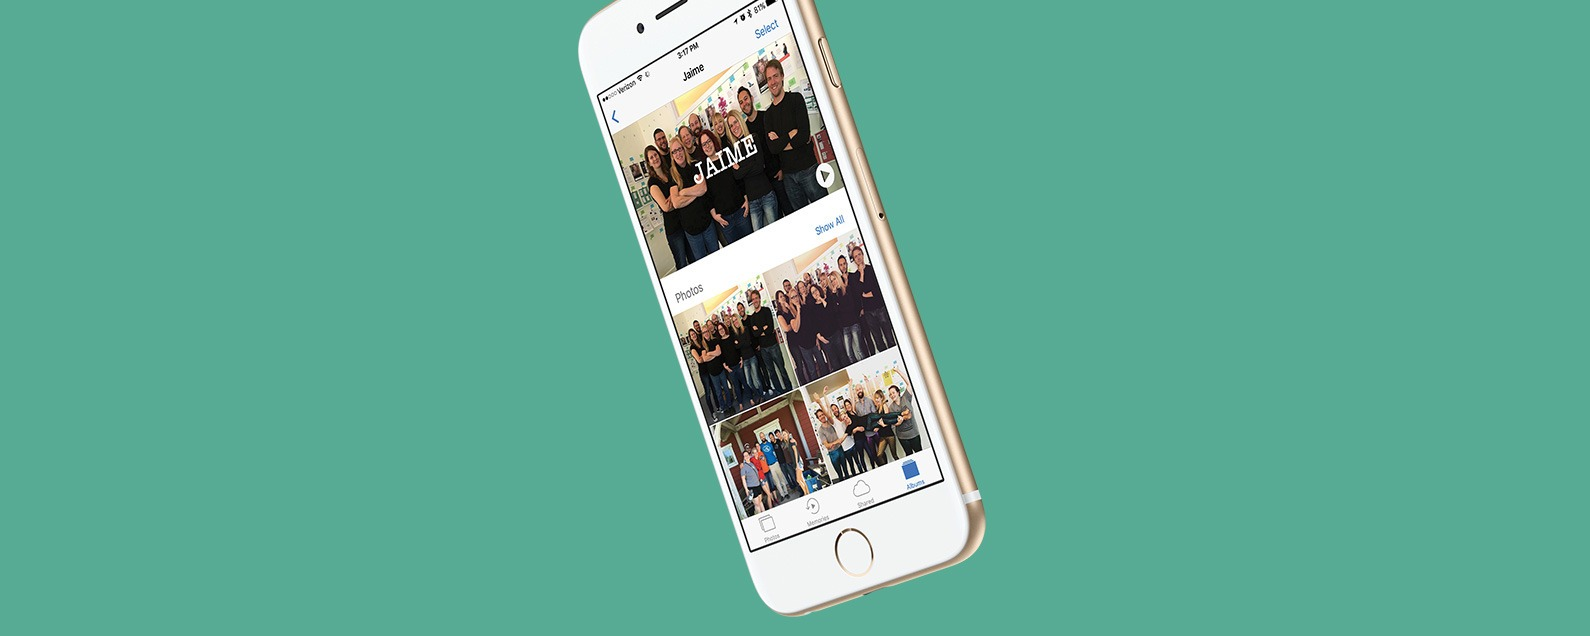 The Photos app got a lot of small upgrades with iOS 10, including the addition of a People album. The app looks through your photos for similar faces, ...